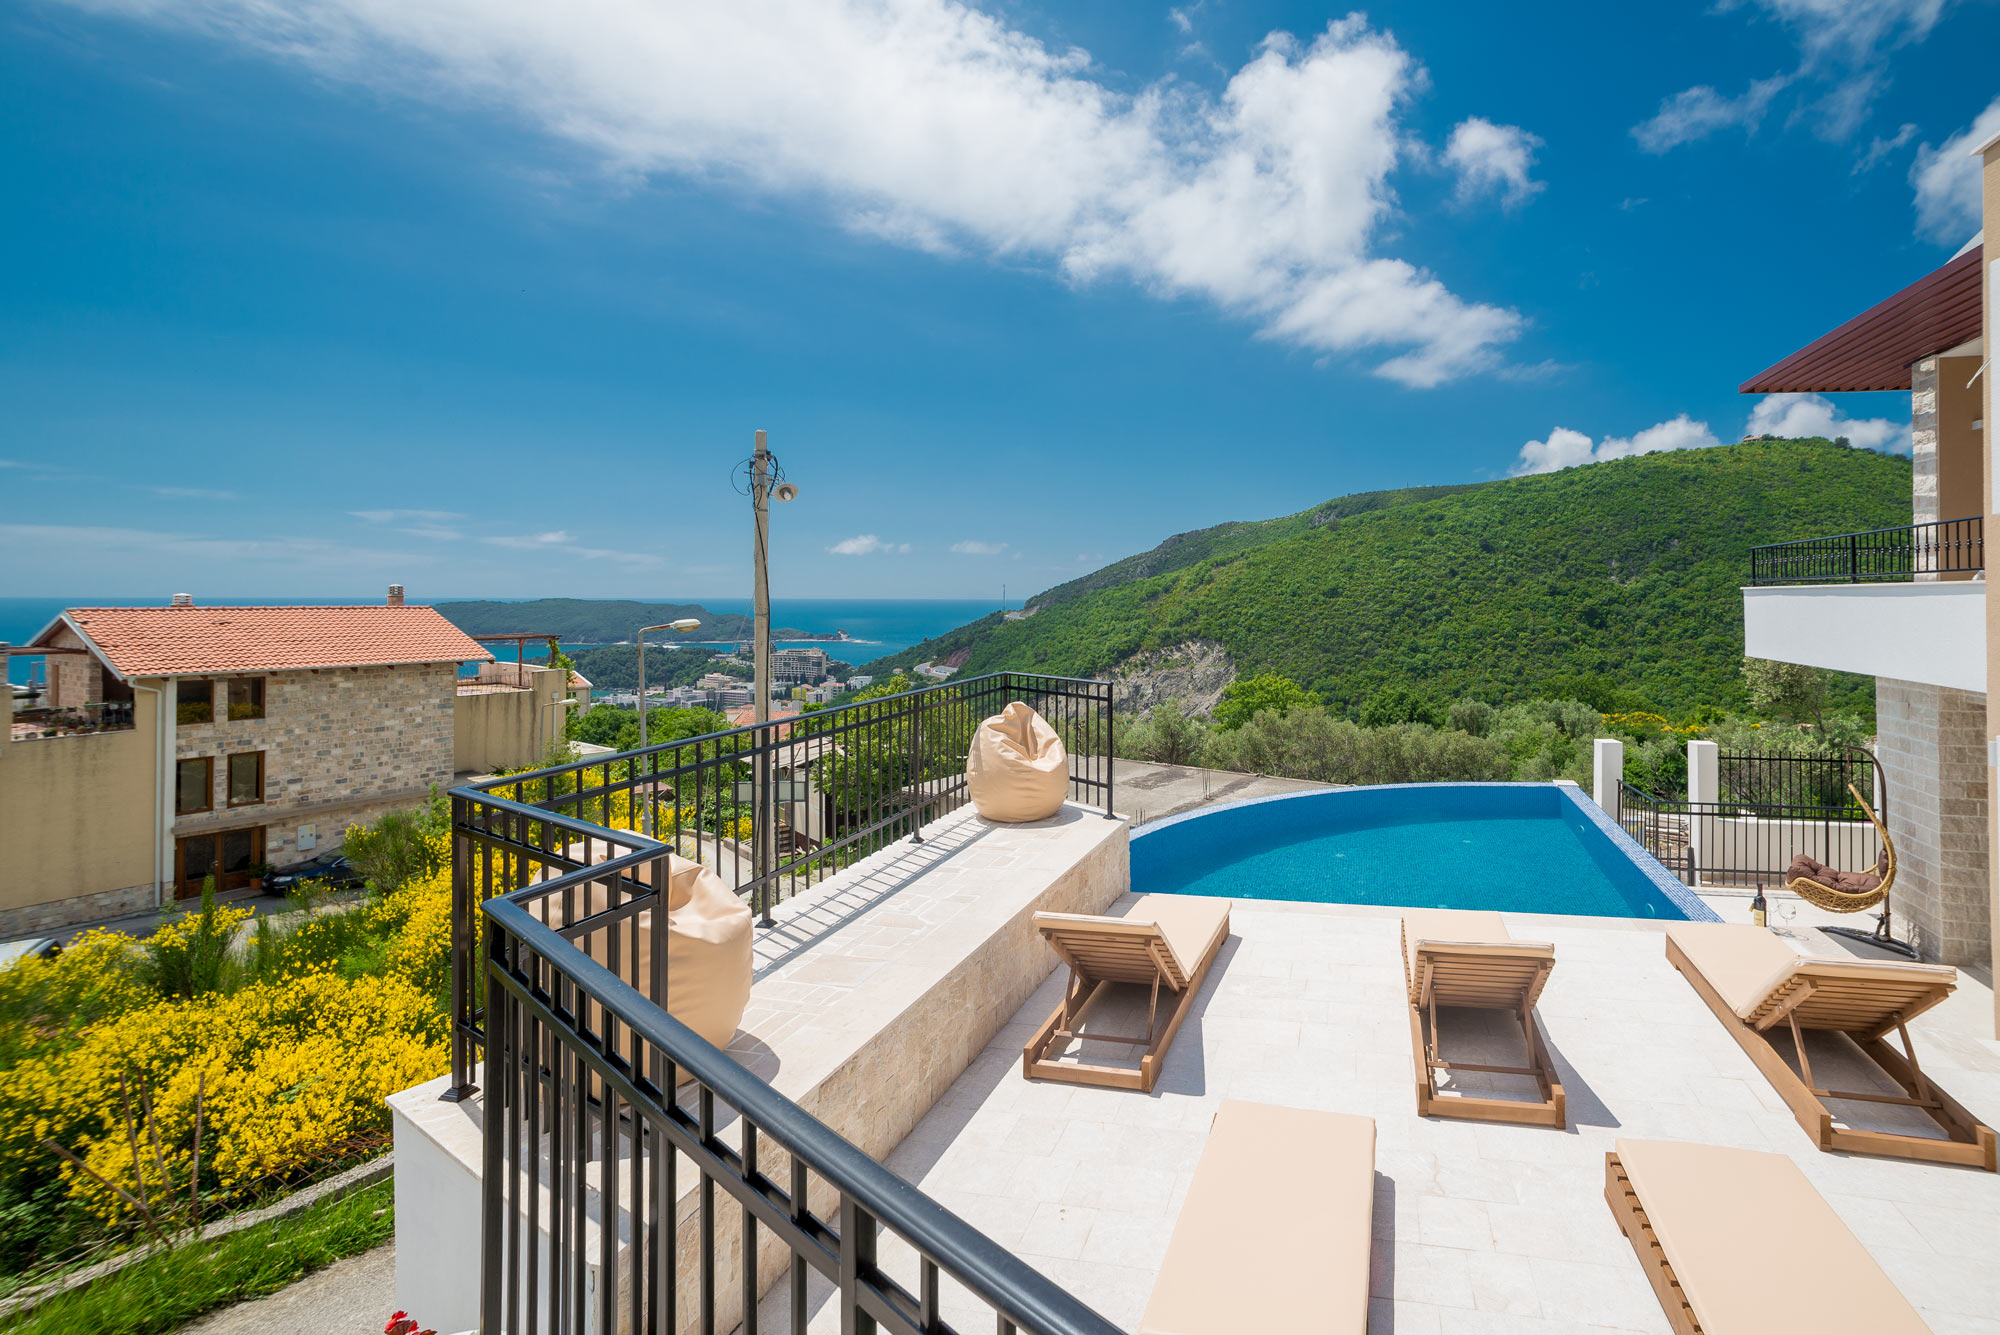 Villa with swimming pool for sale in Budva